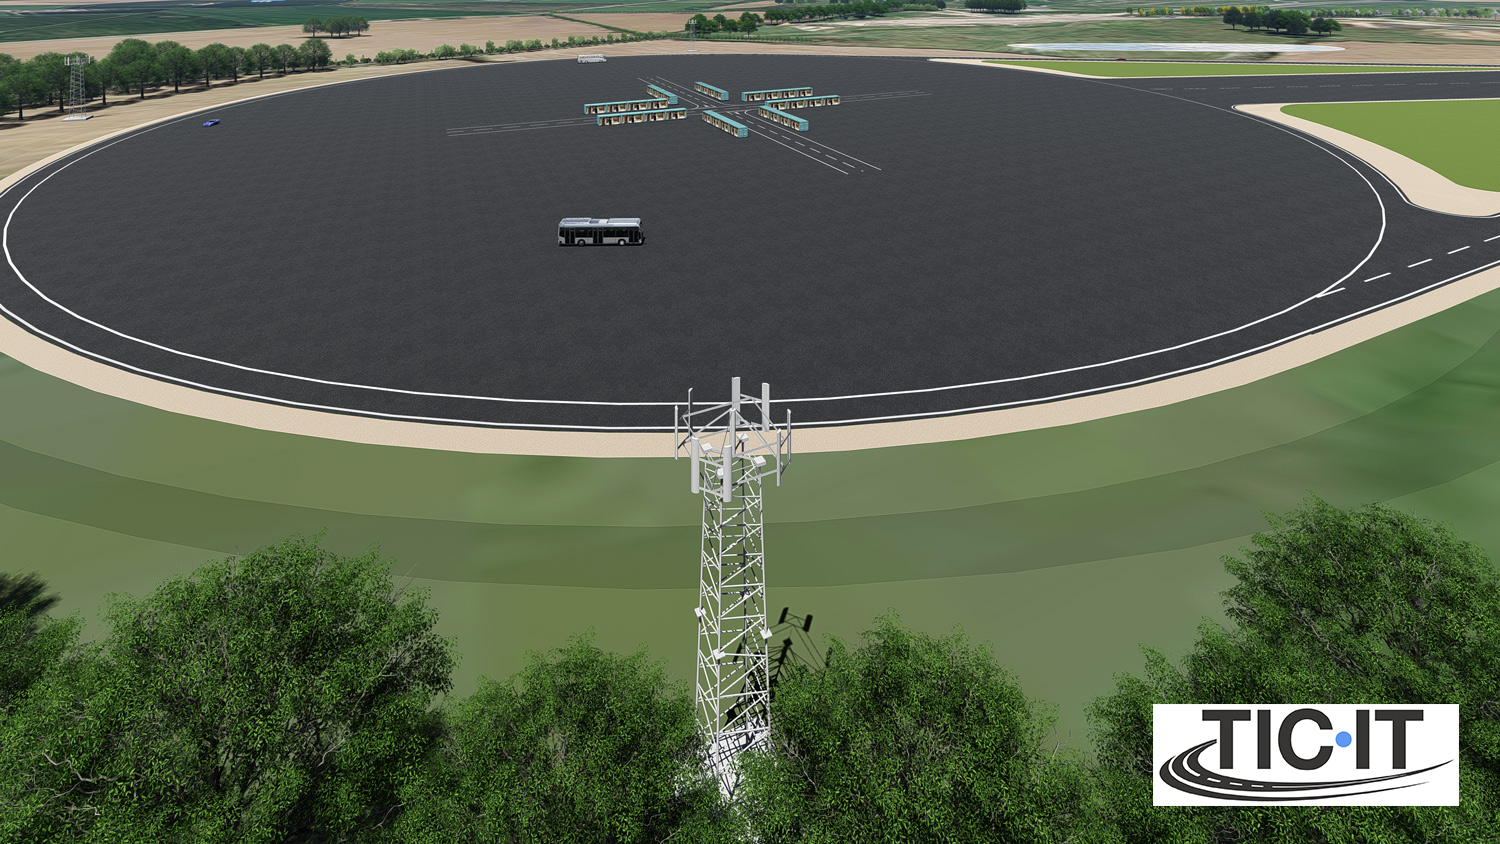 HORIBA MIRA and Coventry University Secure Grant Funding for the Creation of World Class Connected and Autonomous Vehicle Testing Facilities